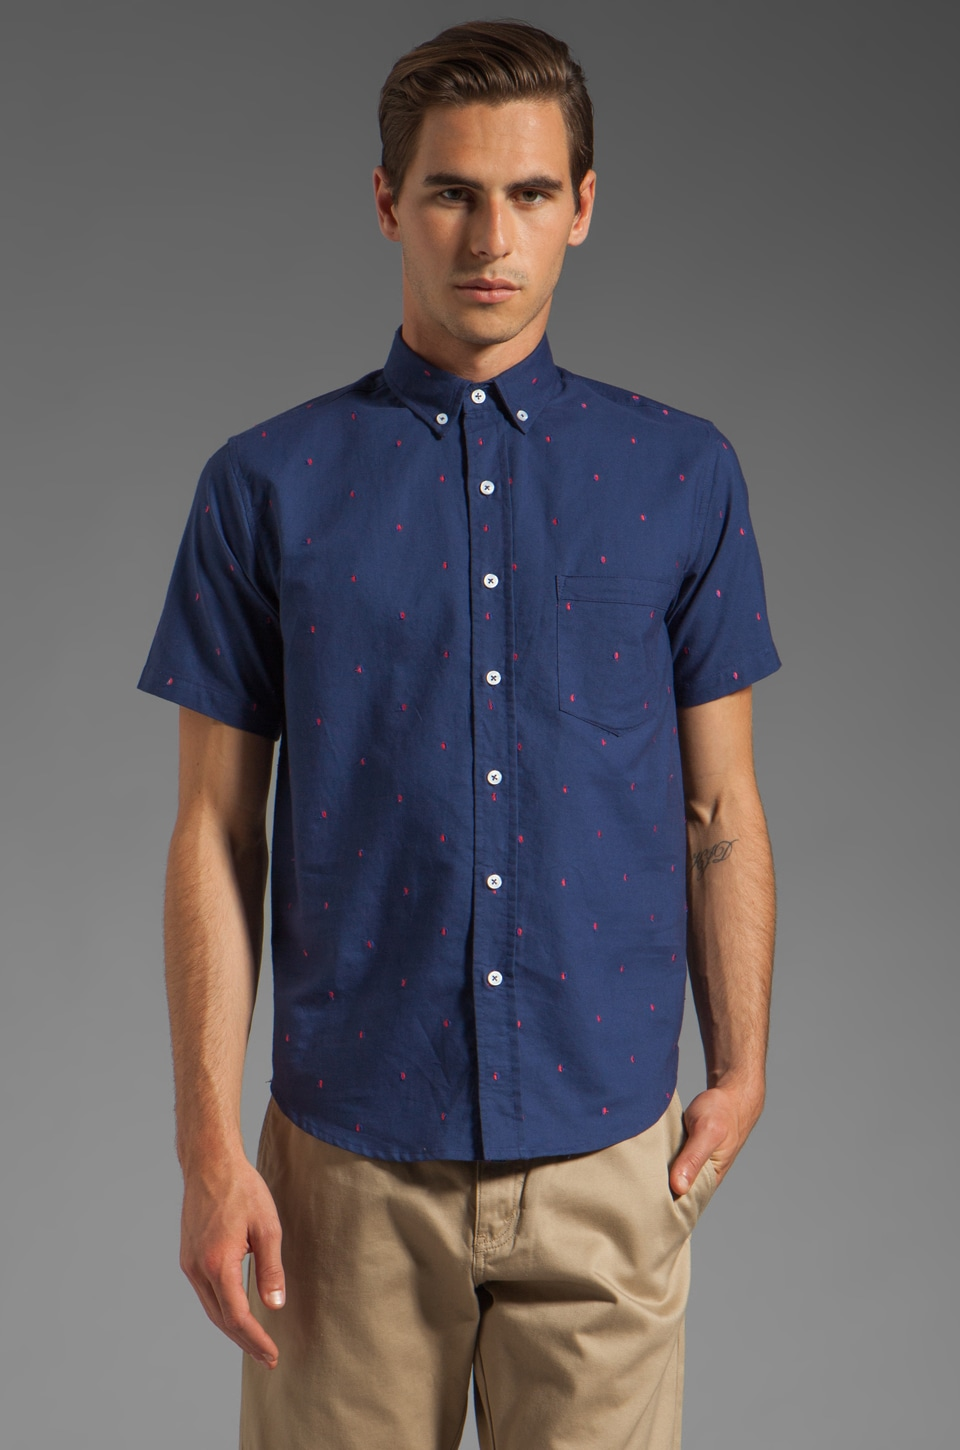 Vanishing Elephant Classic Short Sleeved Shirt in Navy Circles